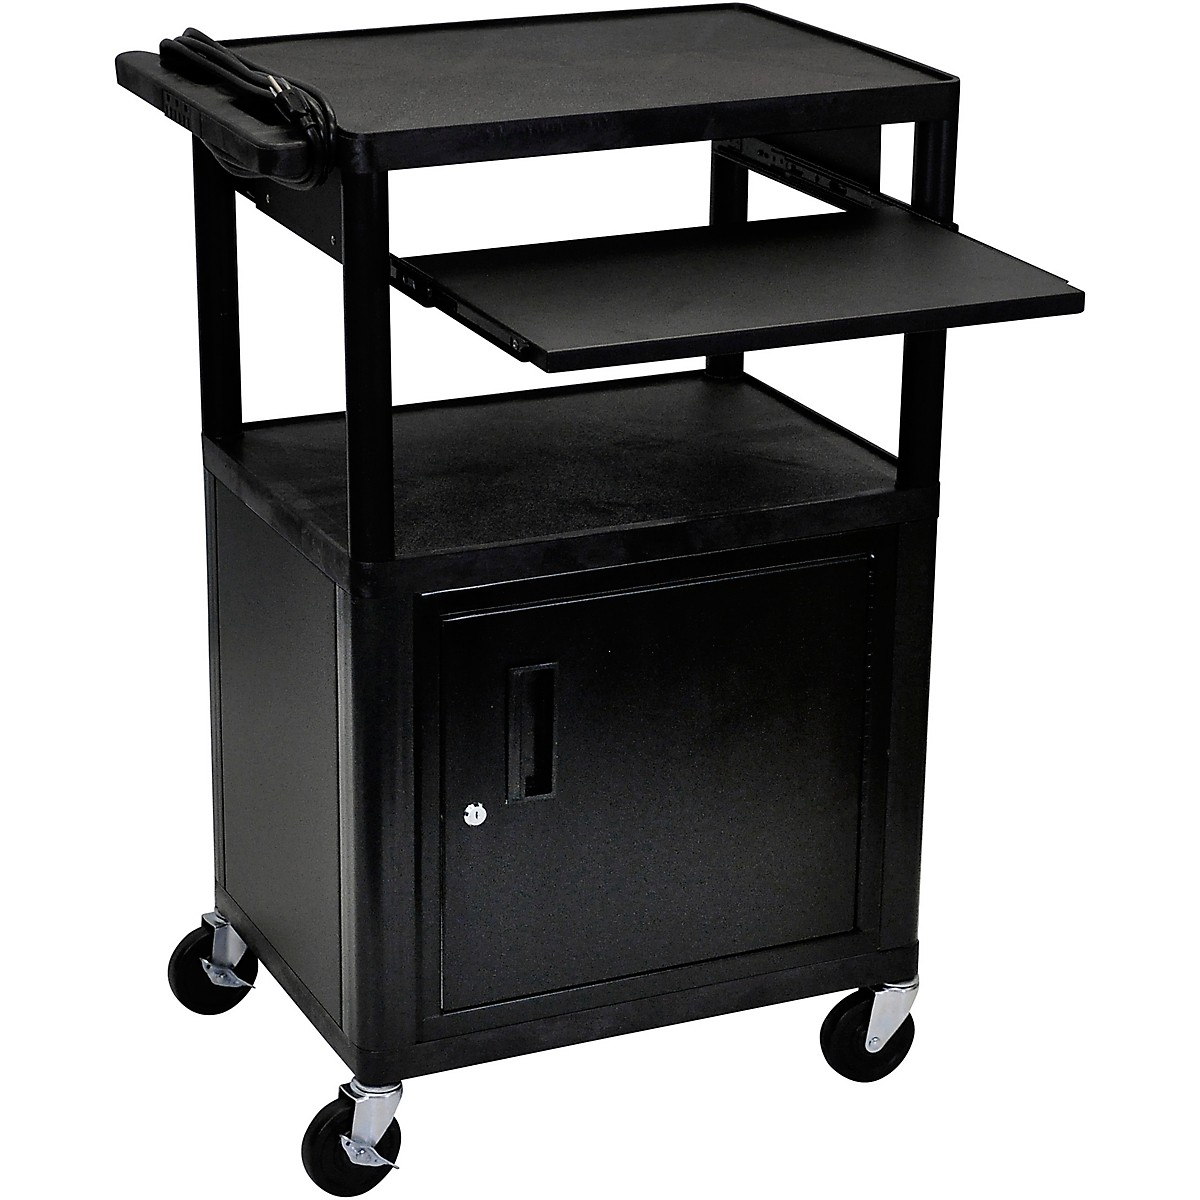 H. Wilson Plastic Cart with Pullout Keyboard Tray